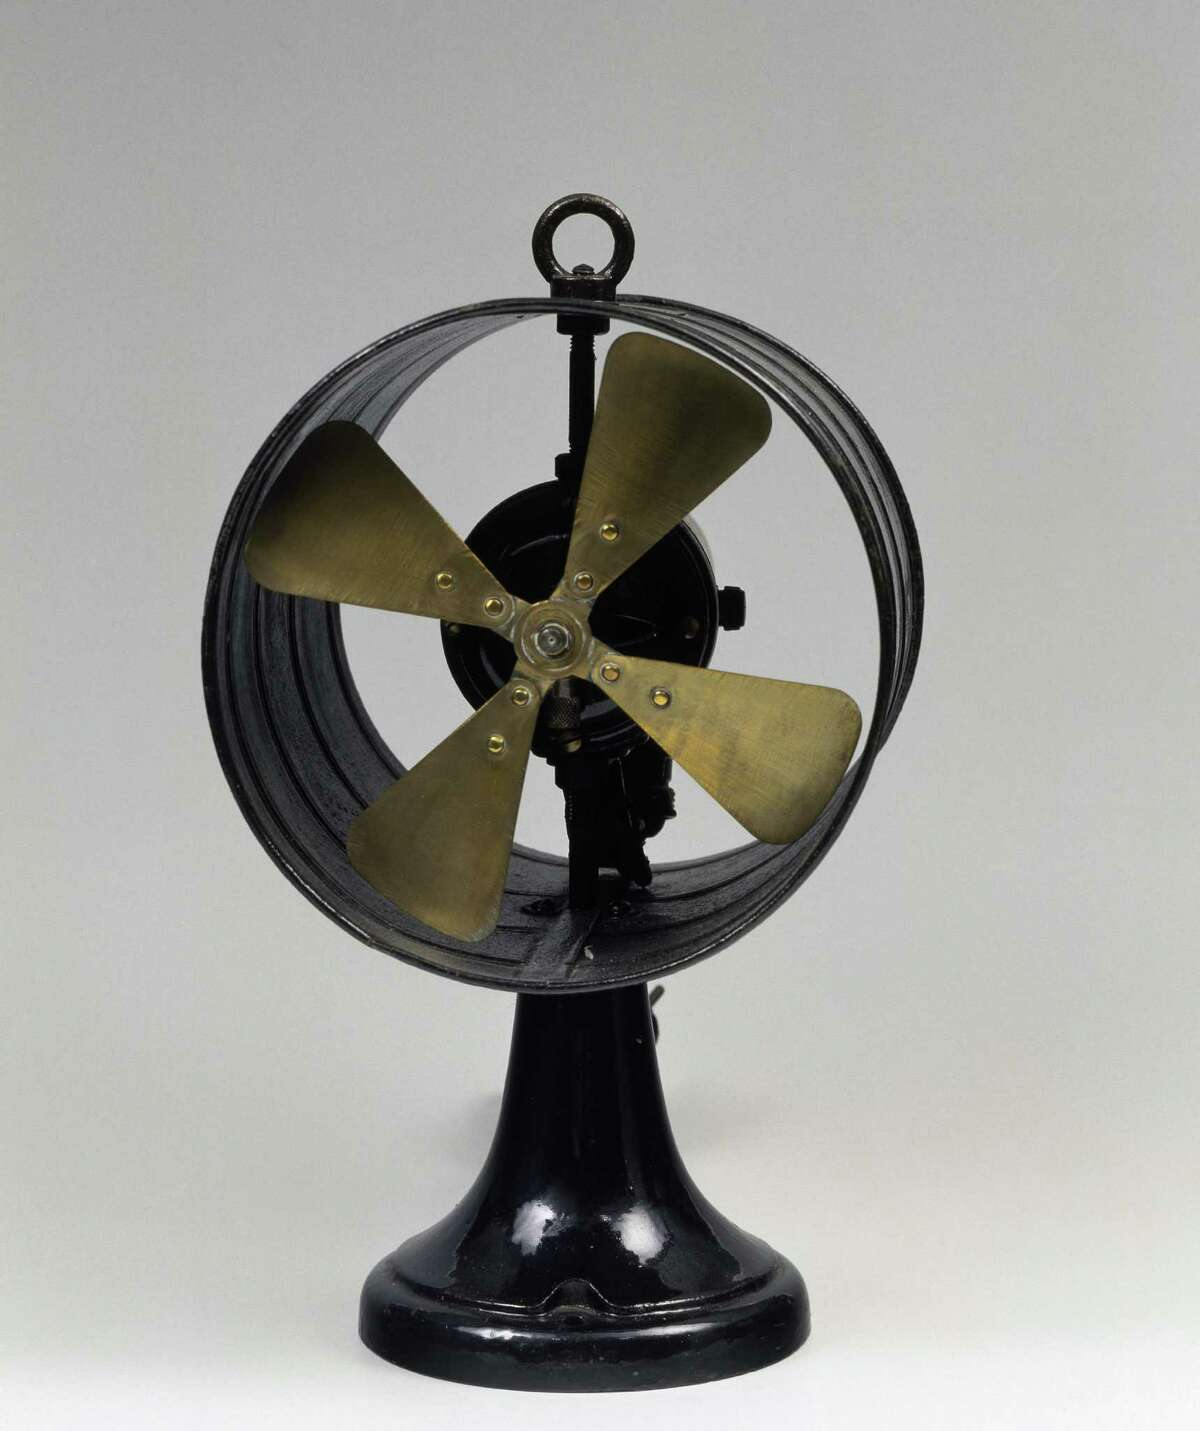 General Electric fan, iron body and brass rotor, 1910. United States of America, 20th century.